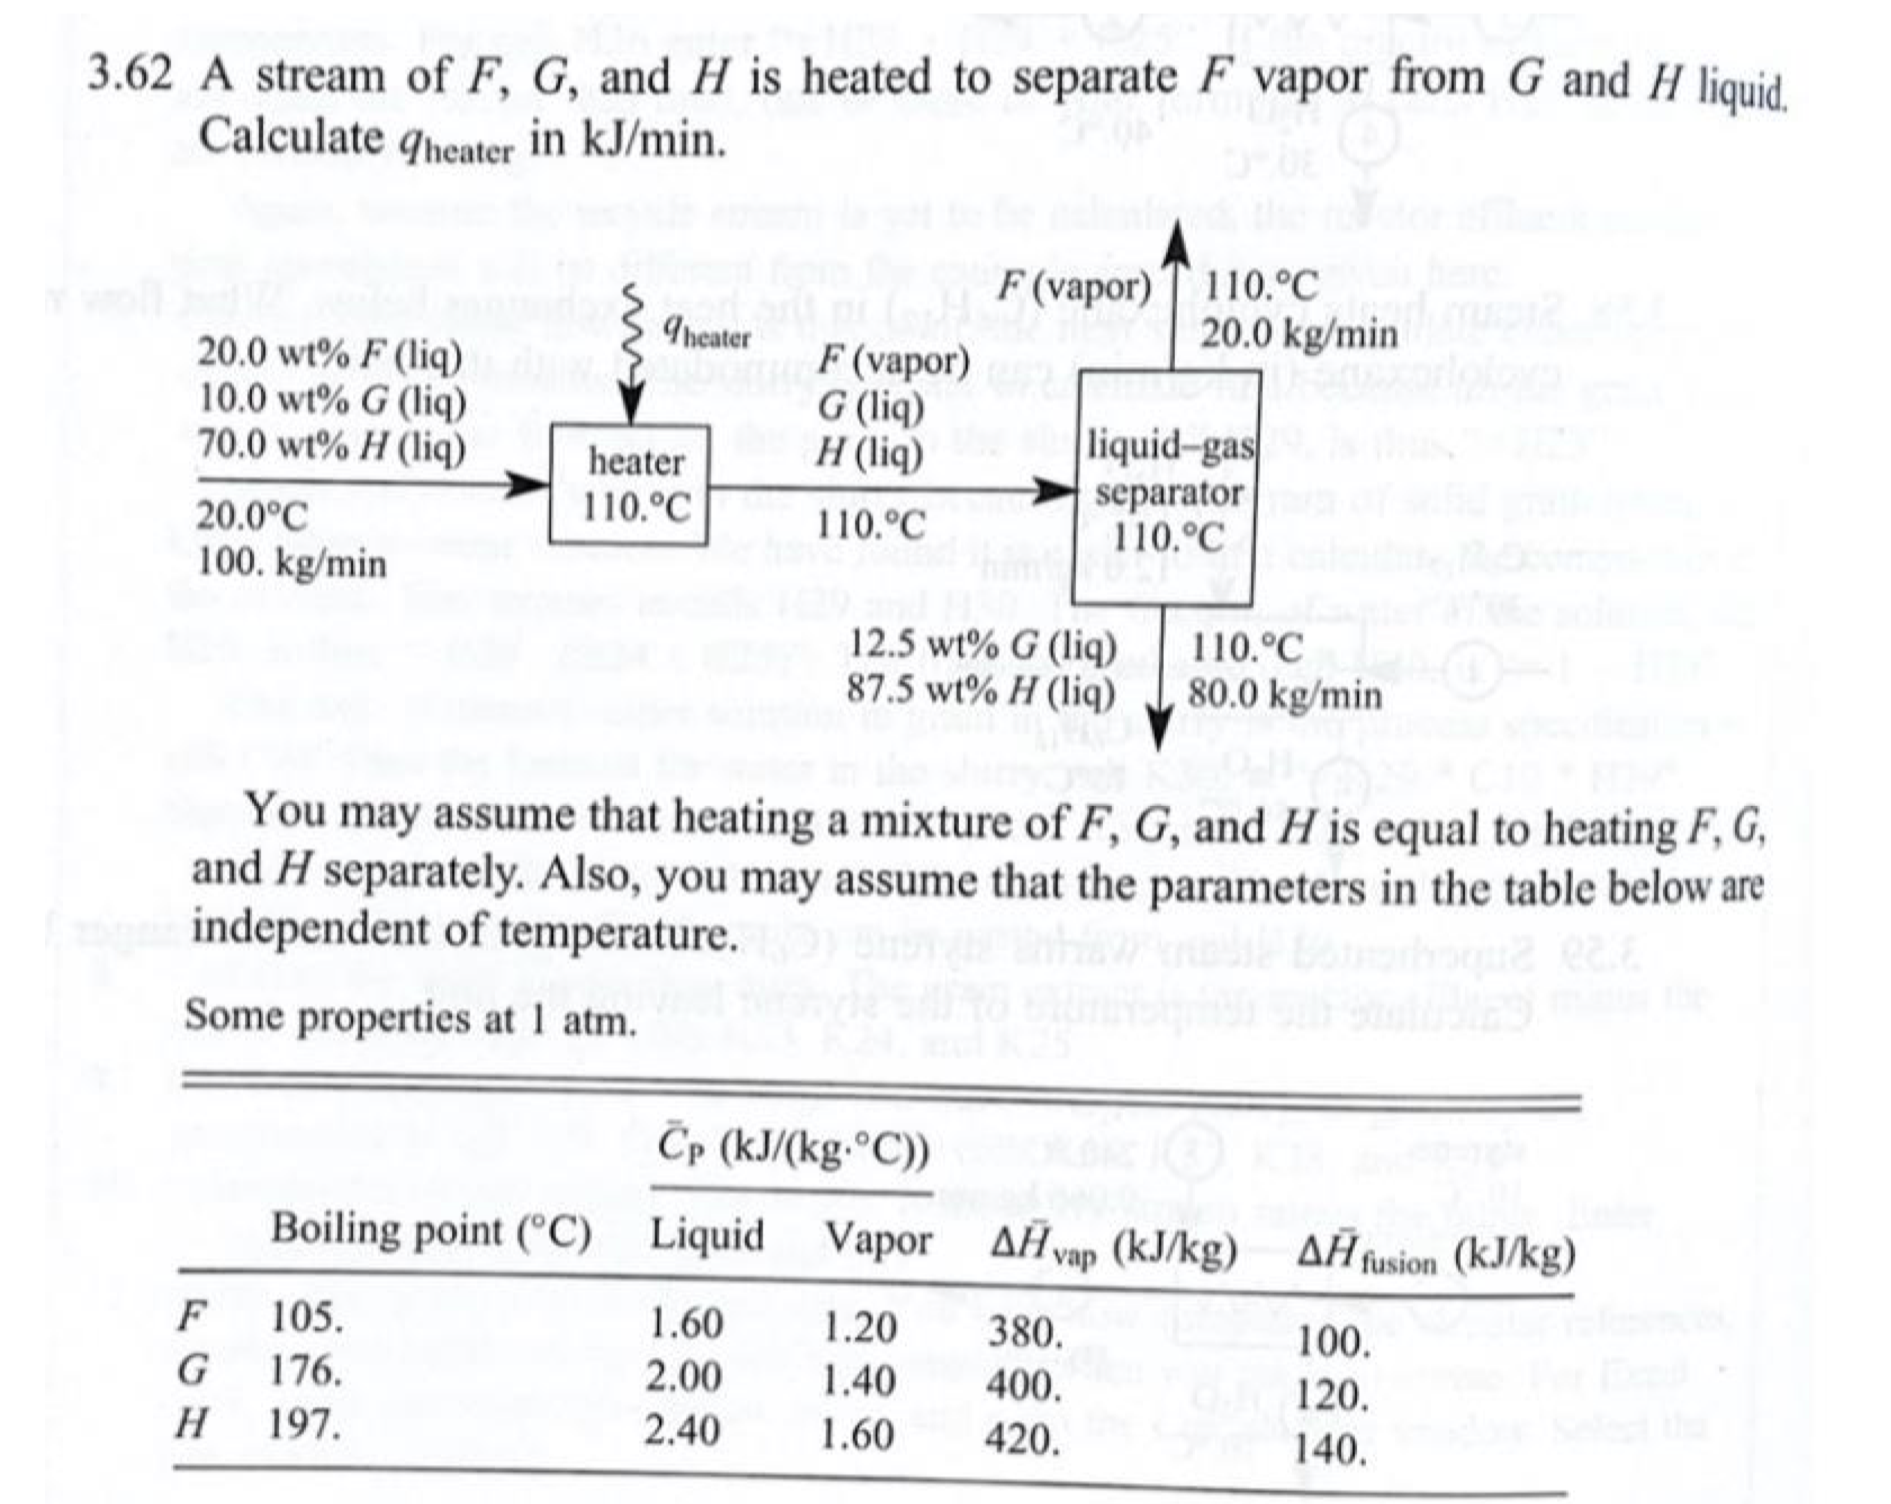 3.62 A stream of F, G, and H is heated to separate F vapor from G and H liquid. Calculate qheater in kJ/min. F (vapor) T 110.°C 20.0 kg/min Iheater 20.0 wt% F (liq) 10.0 wt% G (liq) 70.0 wt% H (liq) F (vapor) G (liq) H (liq) liquid-gas separator 110.°C heater 110.°C 20.0°C 110.°C 100. kg/min 12.5 wt% G (liq) 87.5 wt% H (liq) 110.°C 80.0 kg/min You may assume that heating a mixture of F, G, and H is equal to heating F, G, and H separately. Also, you may assume that the parameters in the table below are independent of temperature. Some properties at 1 atm. Čp (kJ/(kg.°C)) Boiling point (°C) Liquid Vapor AĤvap (kJ/kg) AĤfusion (kJ/kg) 105. 1.60 1.20 380. 100. 176. 2.00 1.40 400. 120. Н 197. 2.40 1.60 420. 140.